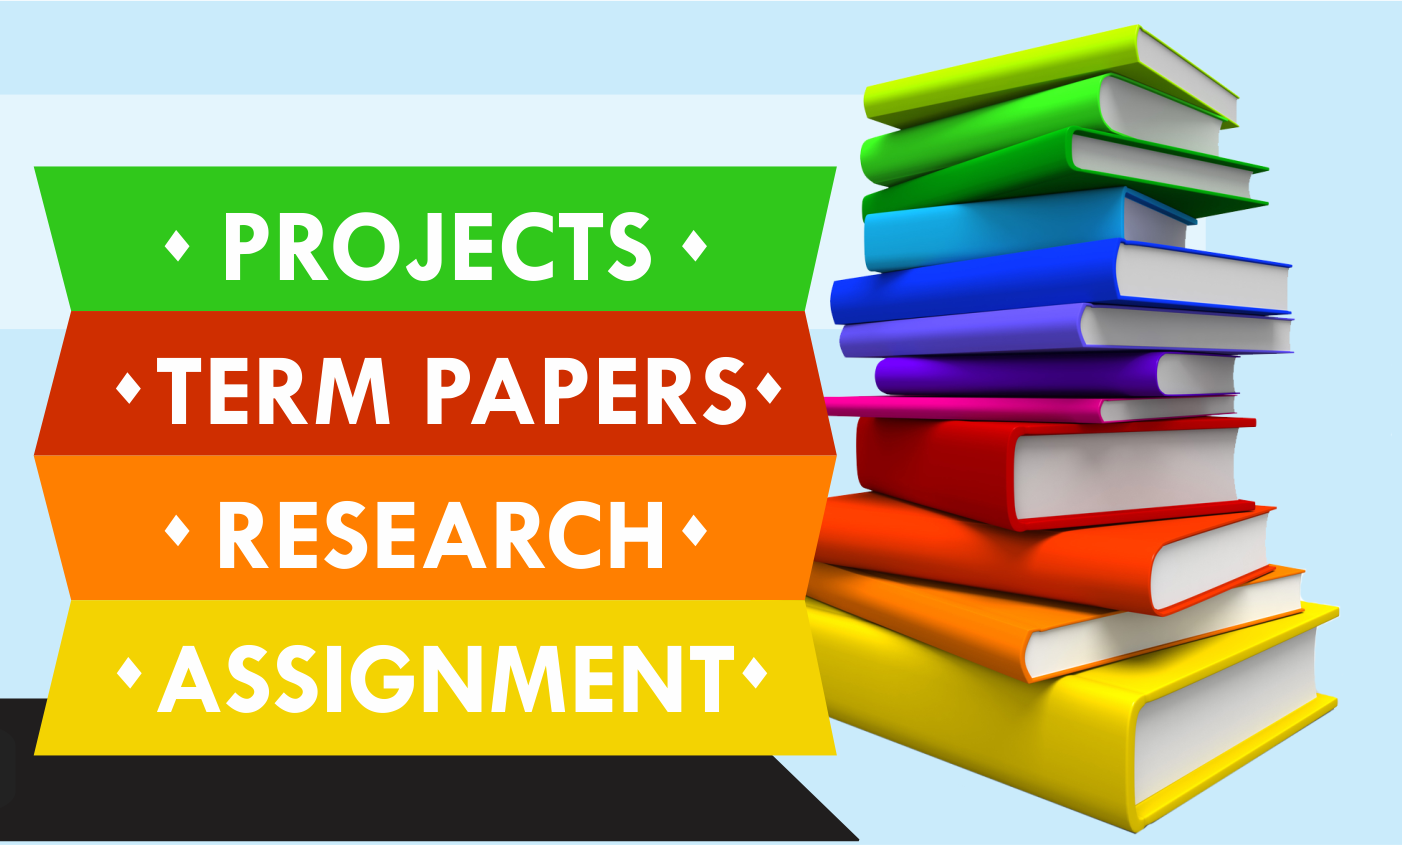 BIOCHEMISTRY PROJECT TOPICS AND MATERIALS | Modish Project